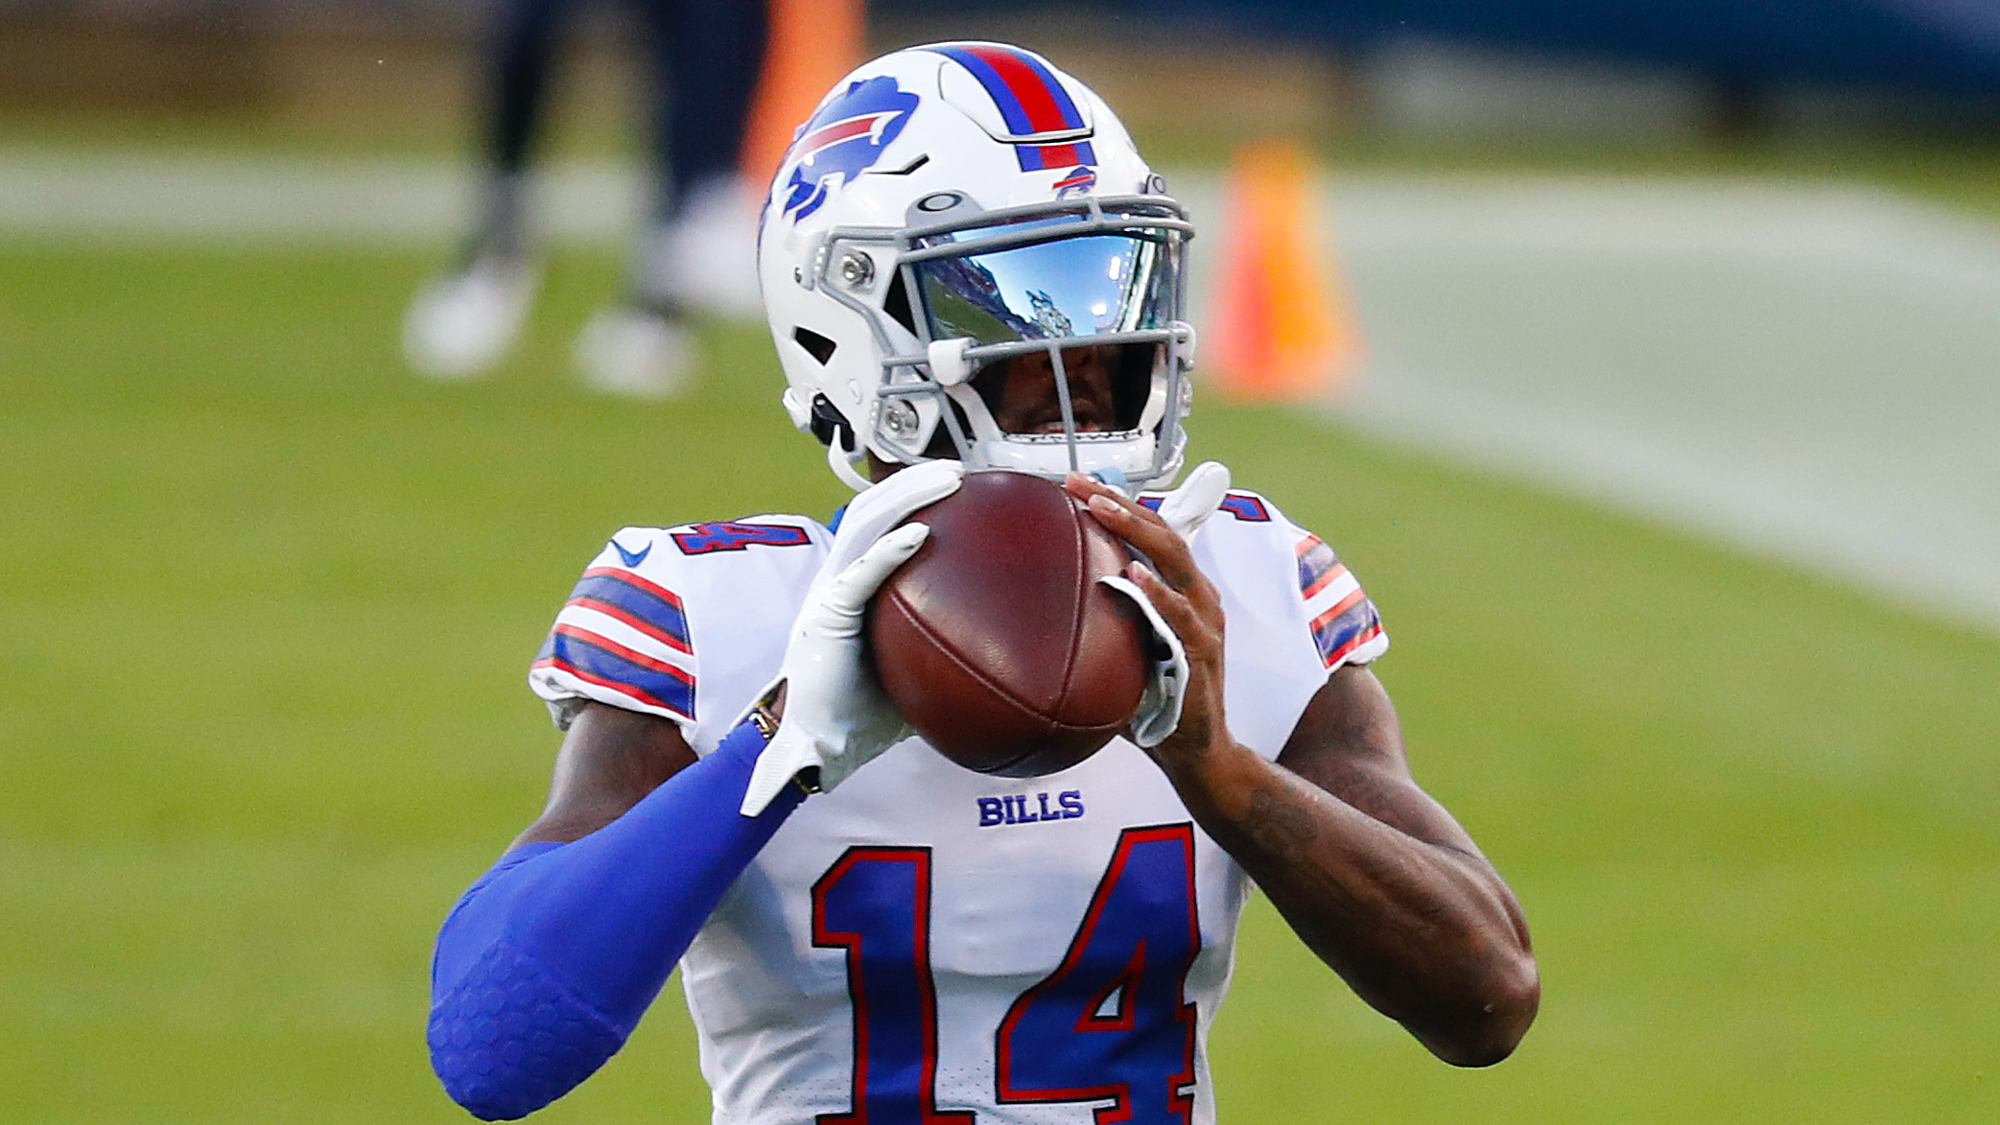 Bills vs. Ravens WR/CB Matchups: Stefon Diggs Gets Downgrade vs. Baltimore Corners article feature image